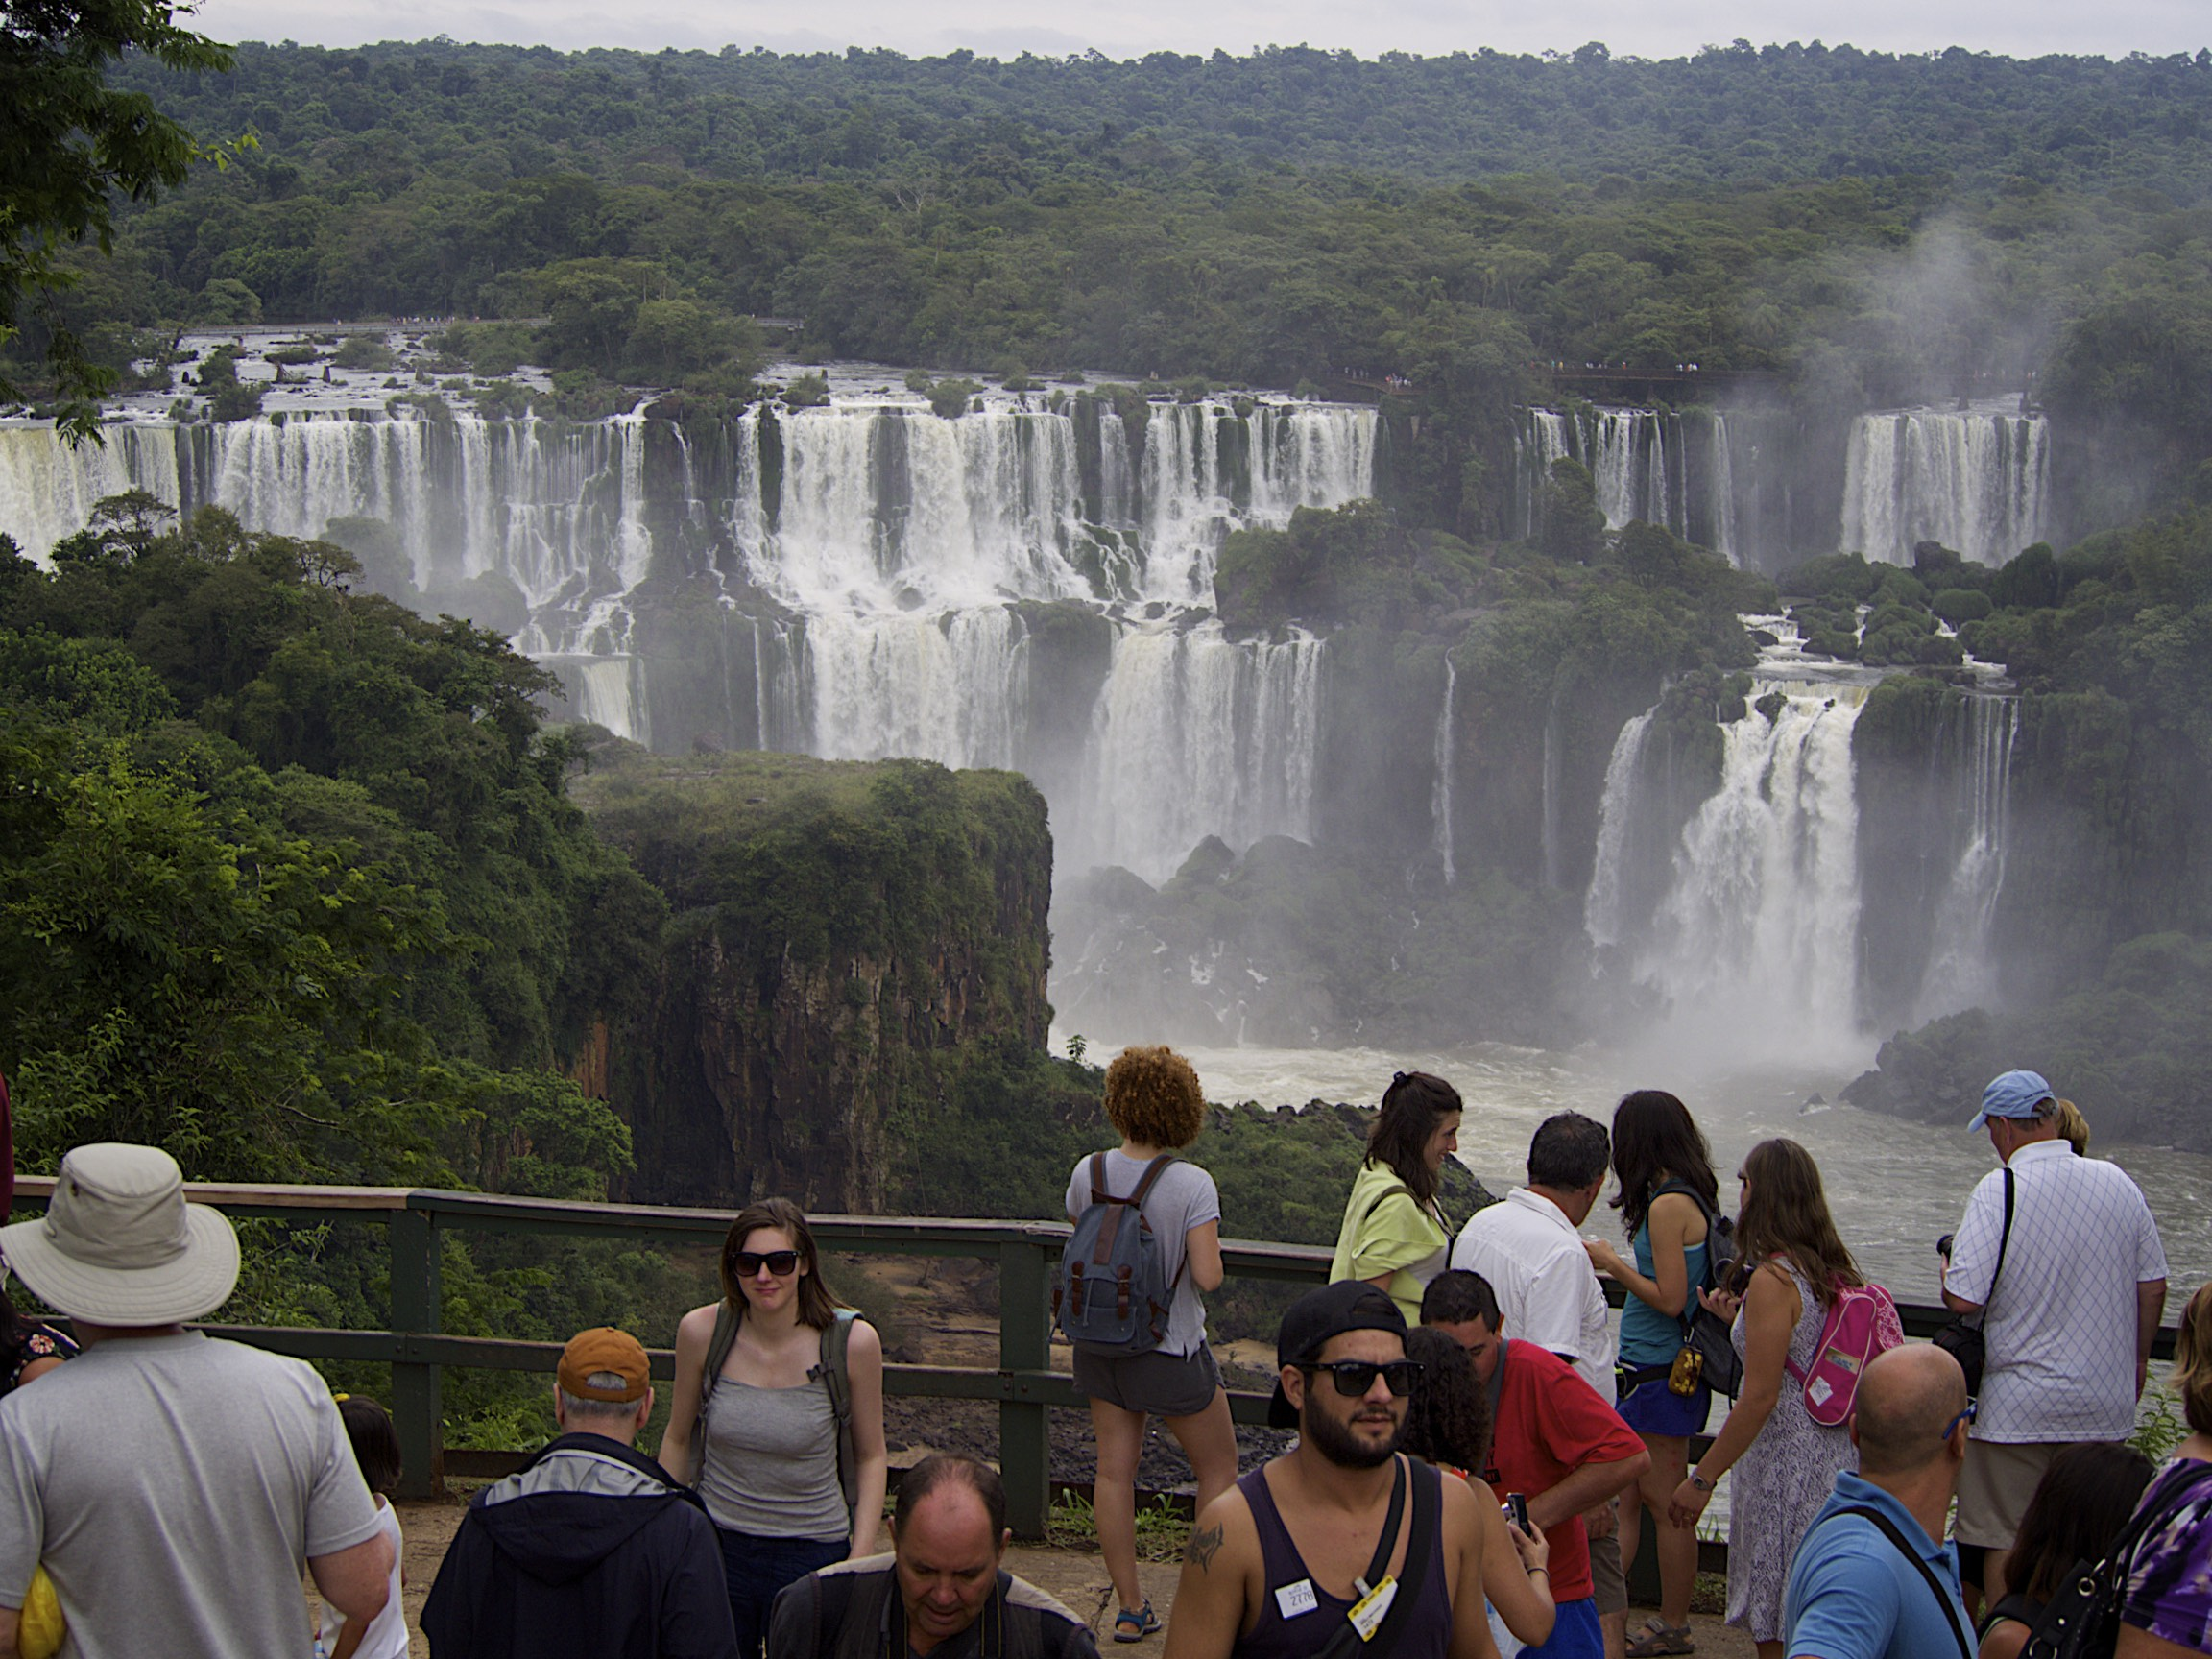 Attempting to get a shot of myself at the Iguacu Falls in Brazil, but being drowned out by everyone else there.